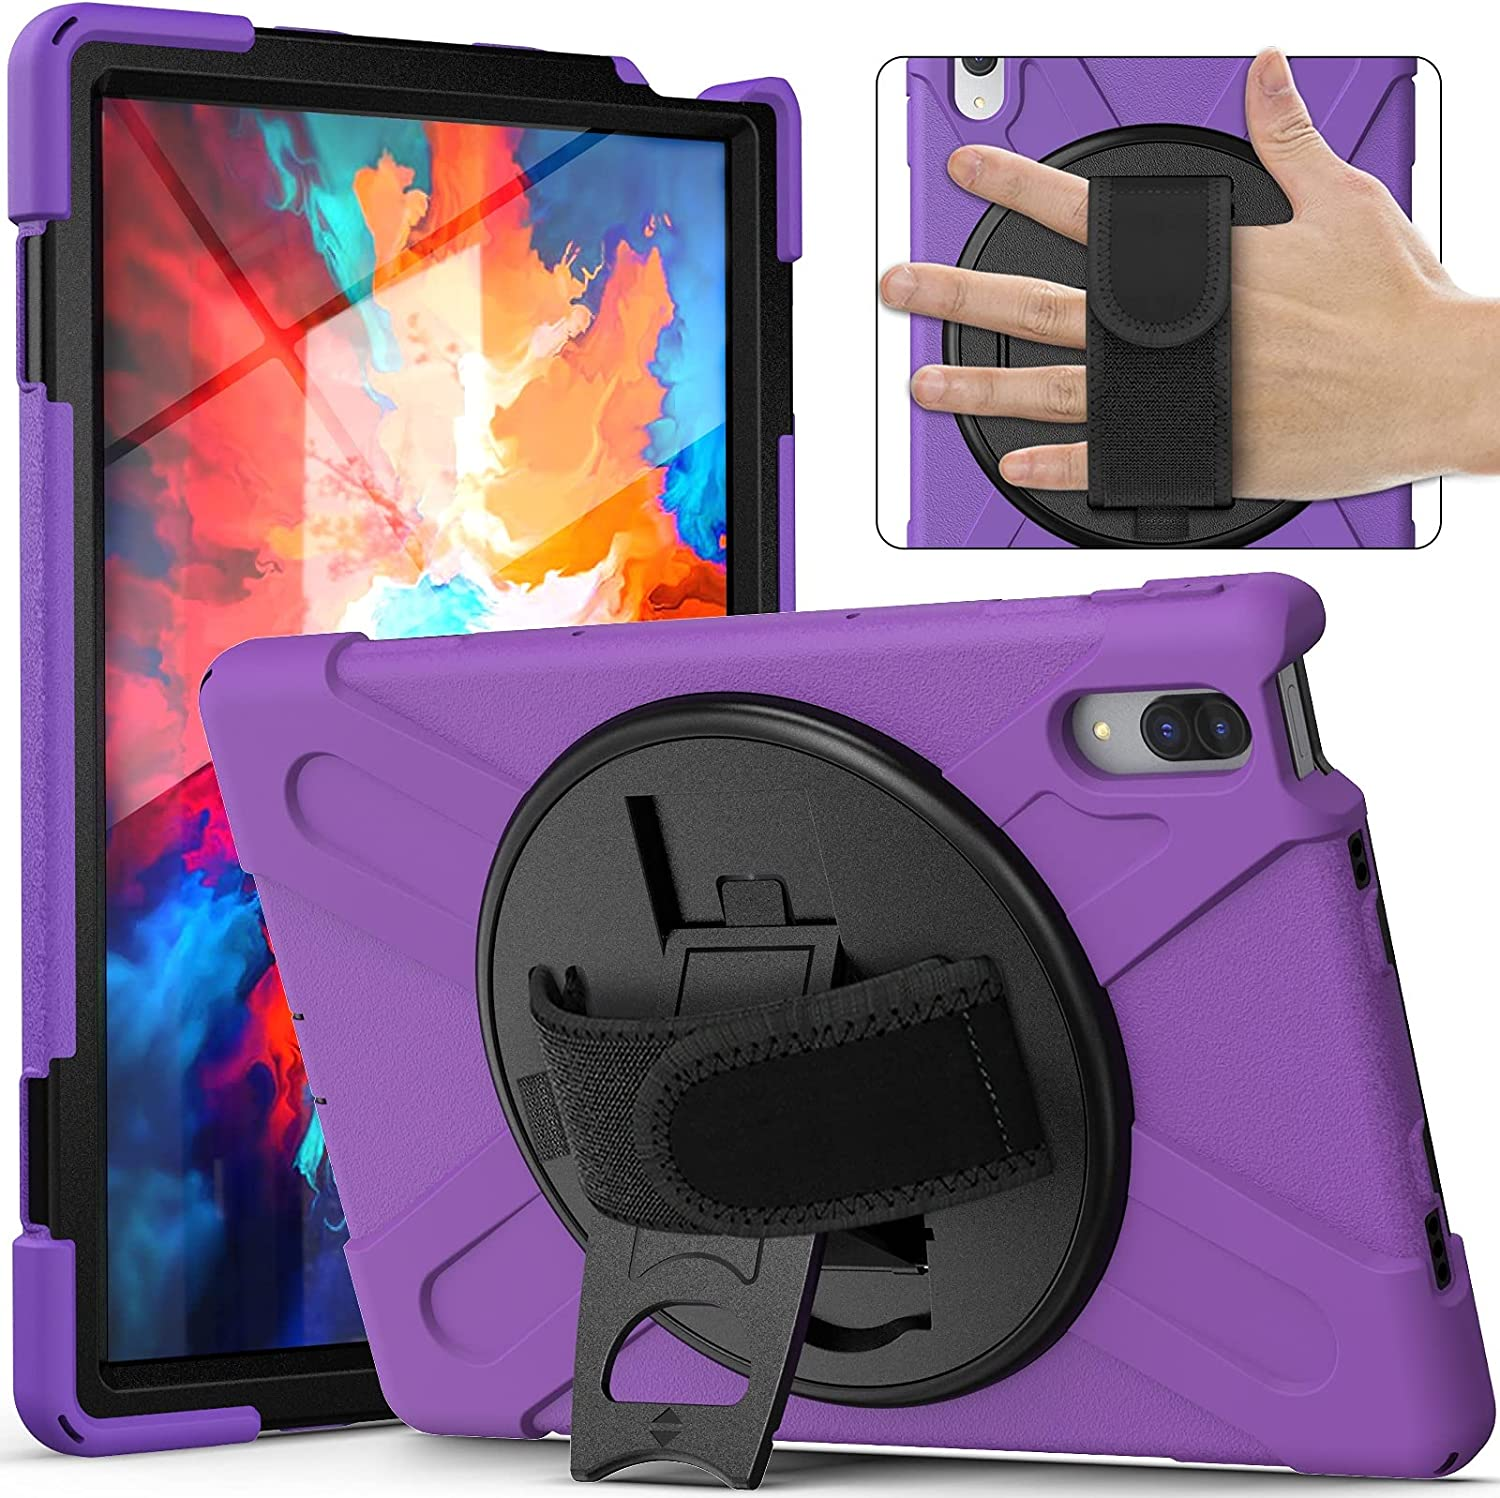 AHUOZ In a popularity Tablet Price reduction PC Case Bag Cover Sleeves for Lenovo iPad11.